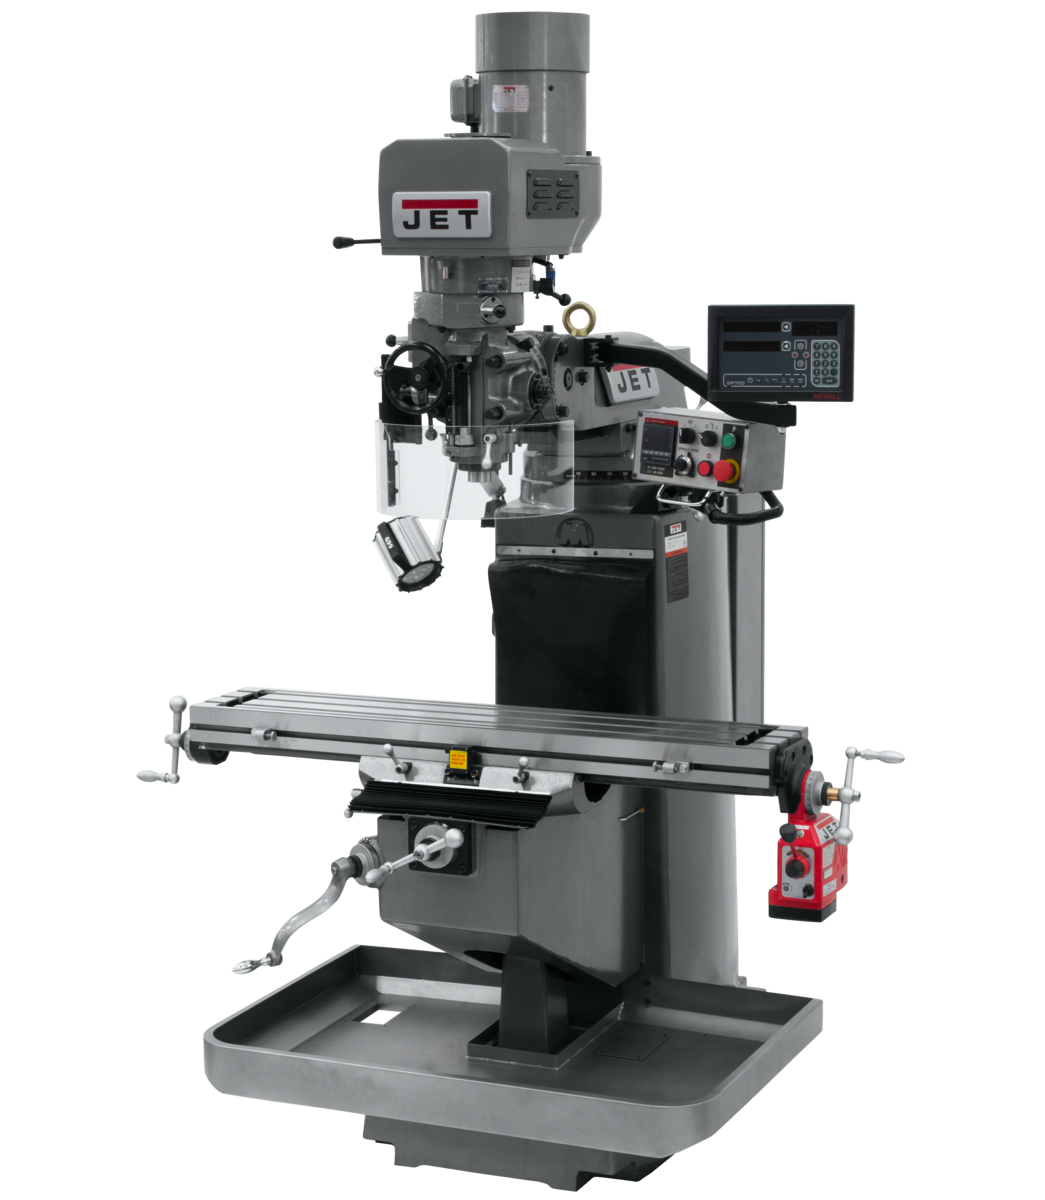 JTM-949EVS Mill With 3-Axis Newall DP700 DRO (Quill) With X-Axis Powerfeed